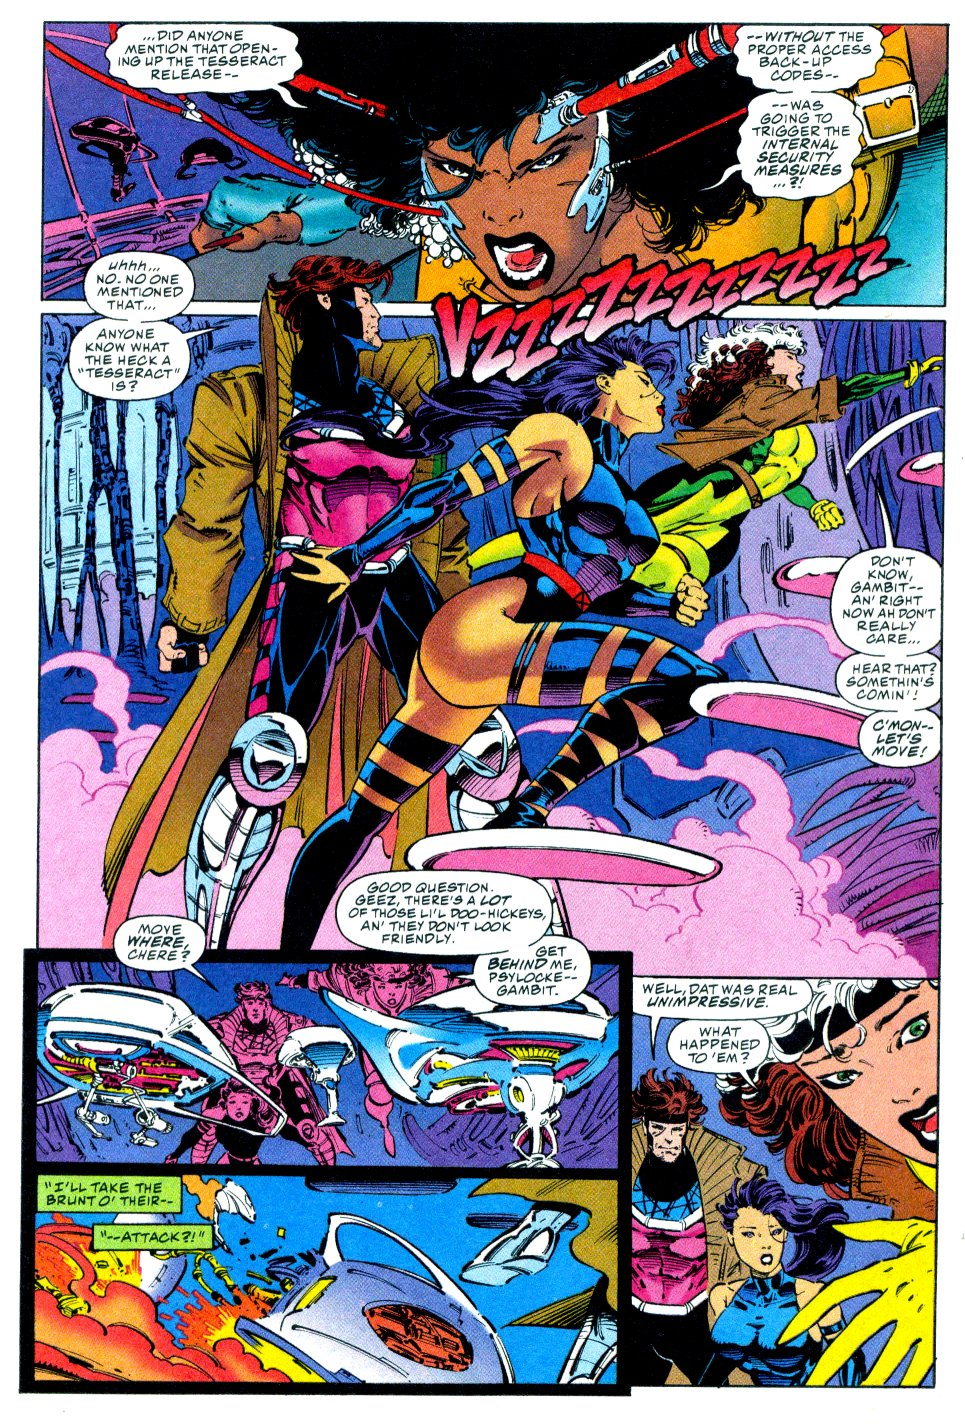 X Men 1991 Issue 34 Read X Men 1991 Issue 34 Comic Online In High Quality In 2020 X Men Comics Comics Online